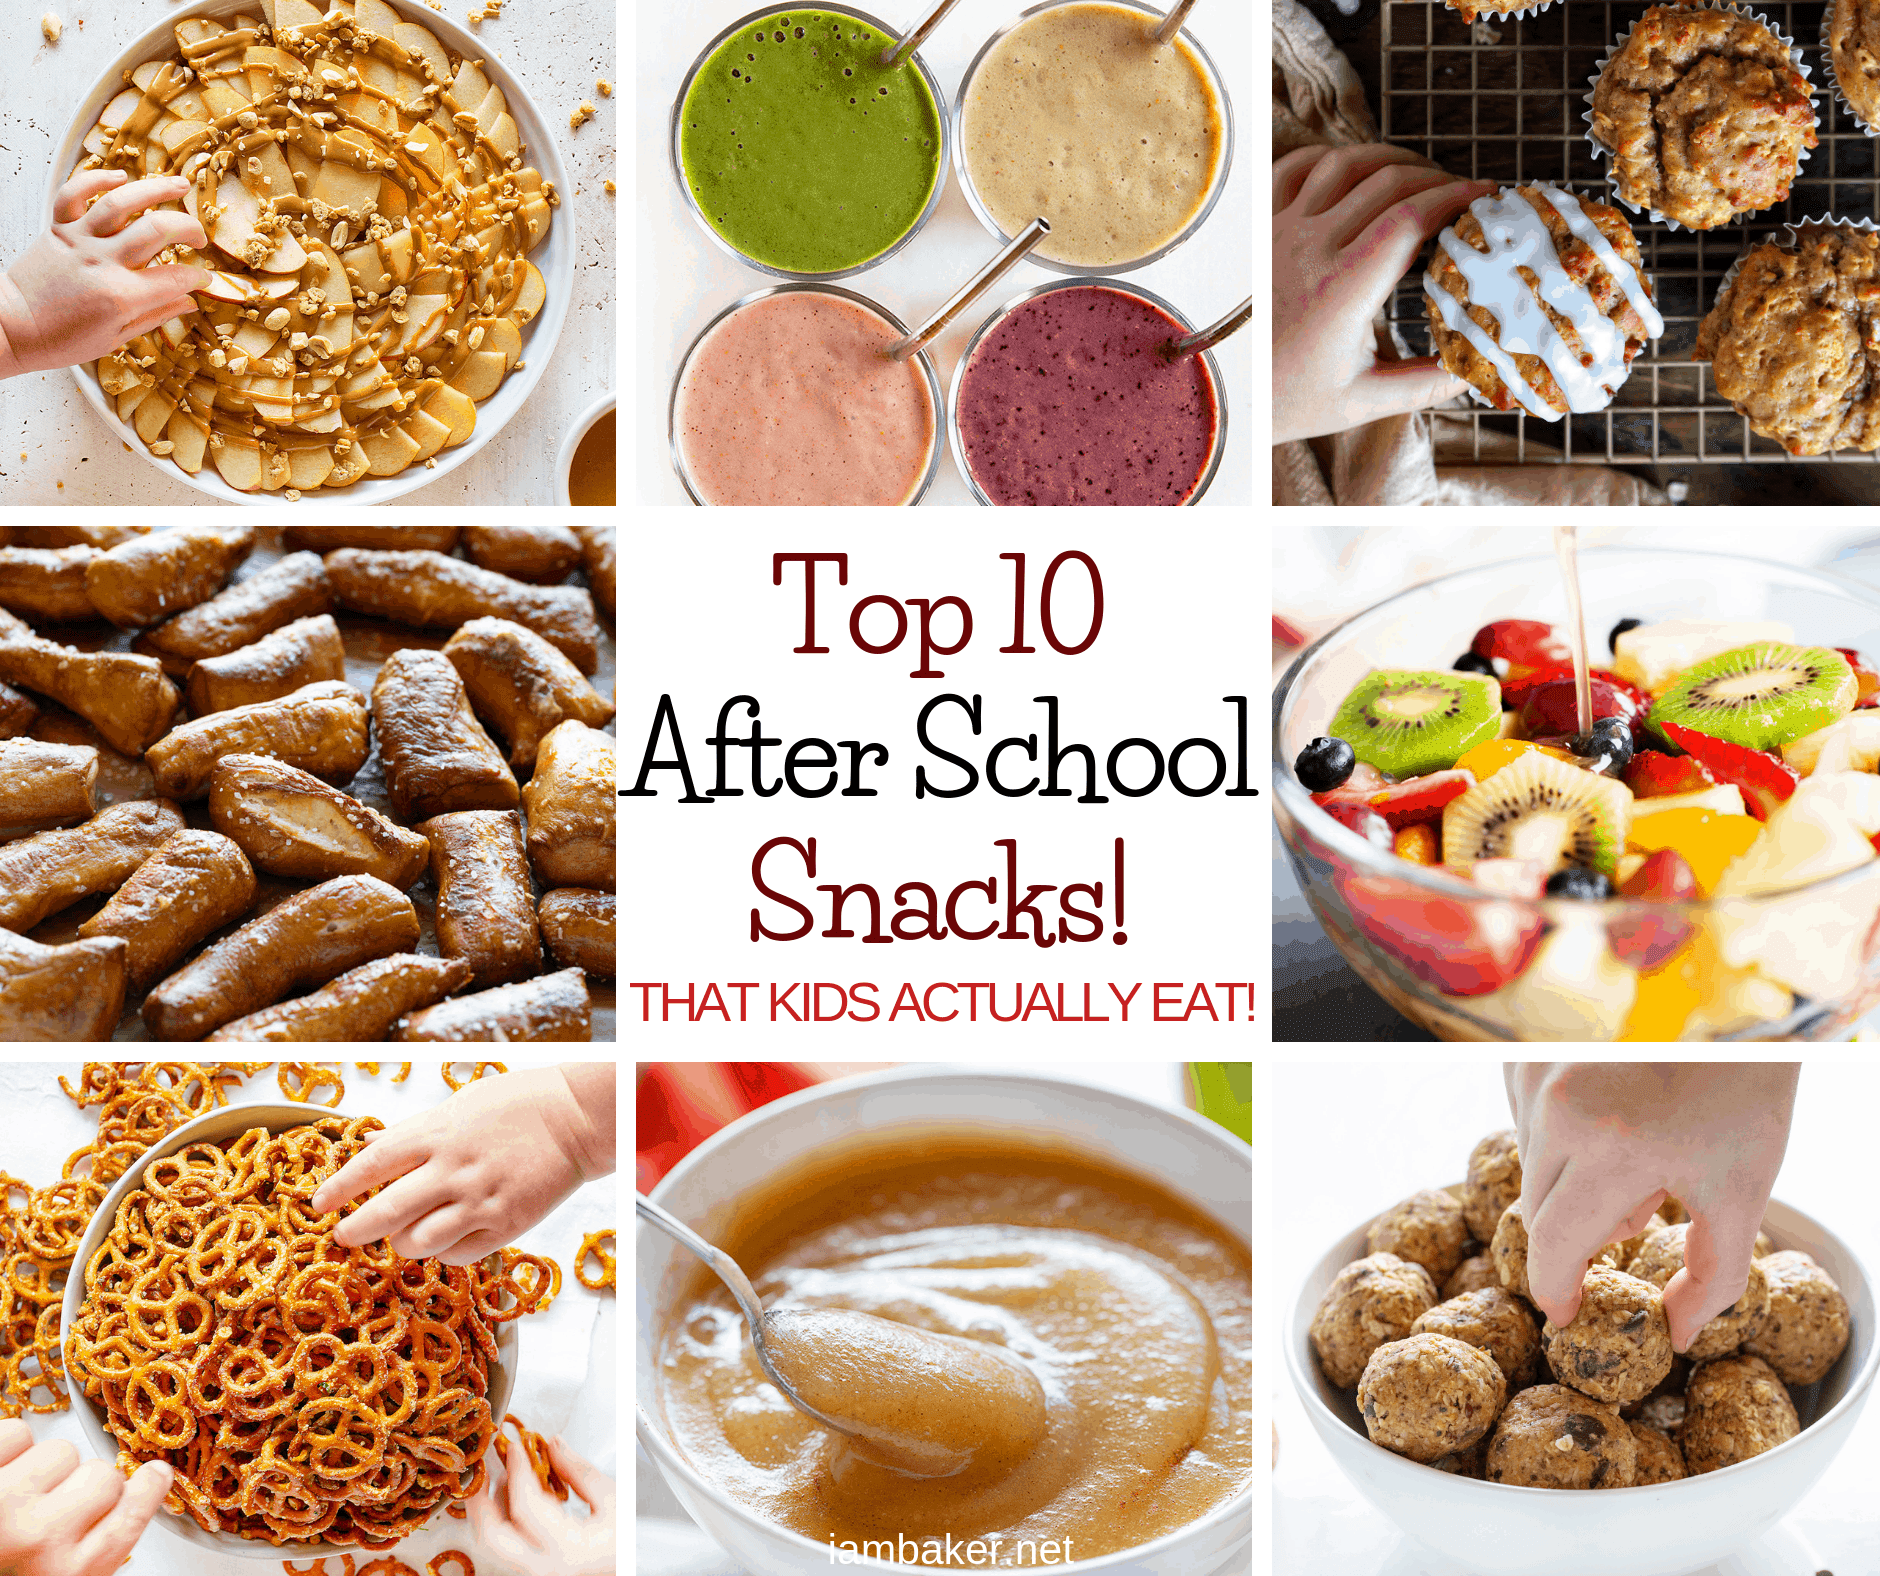 Top 10 After School Snack Recipes